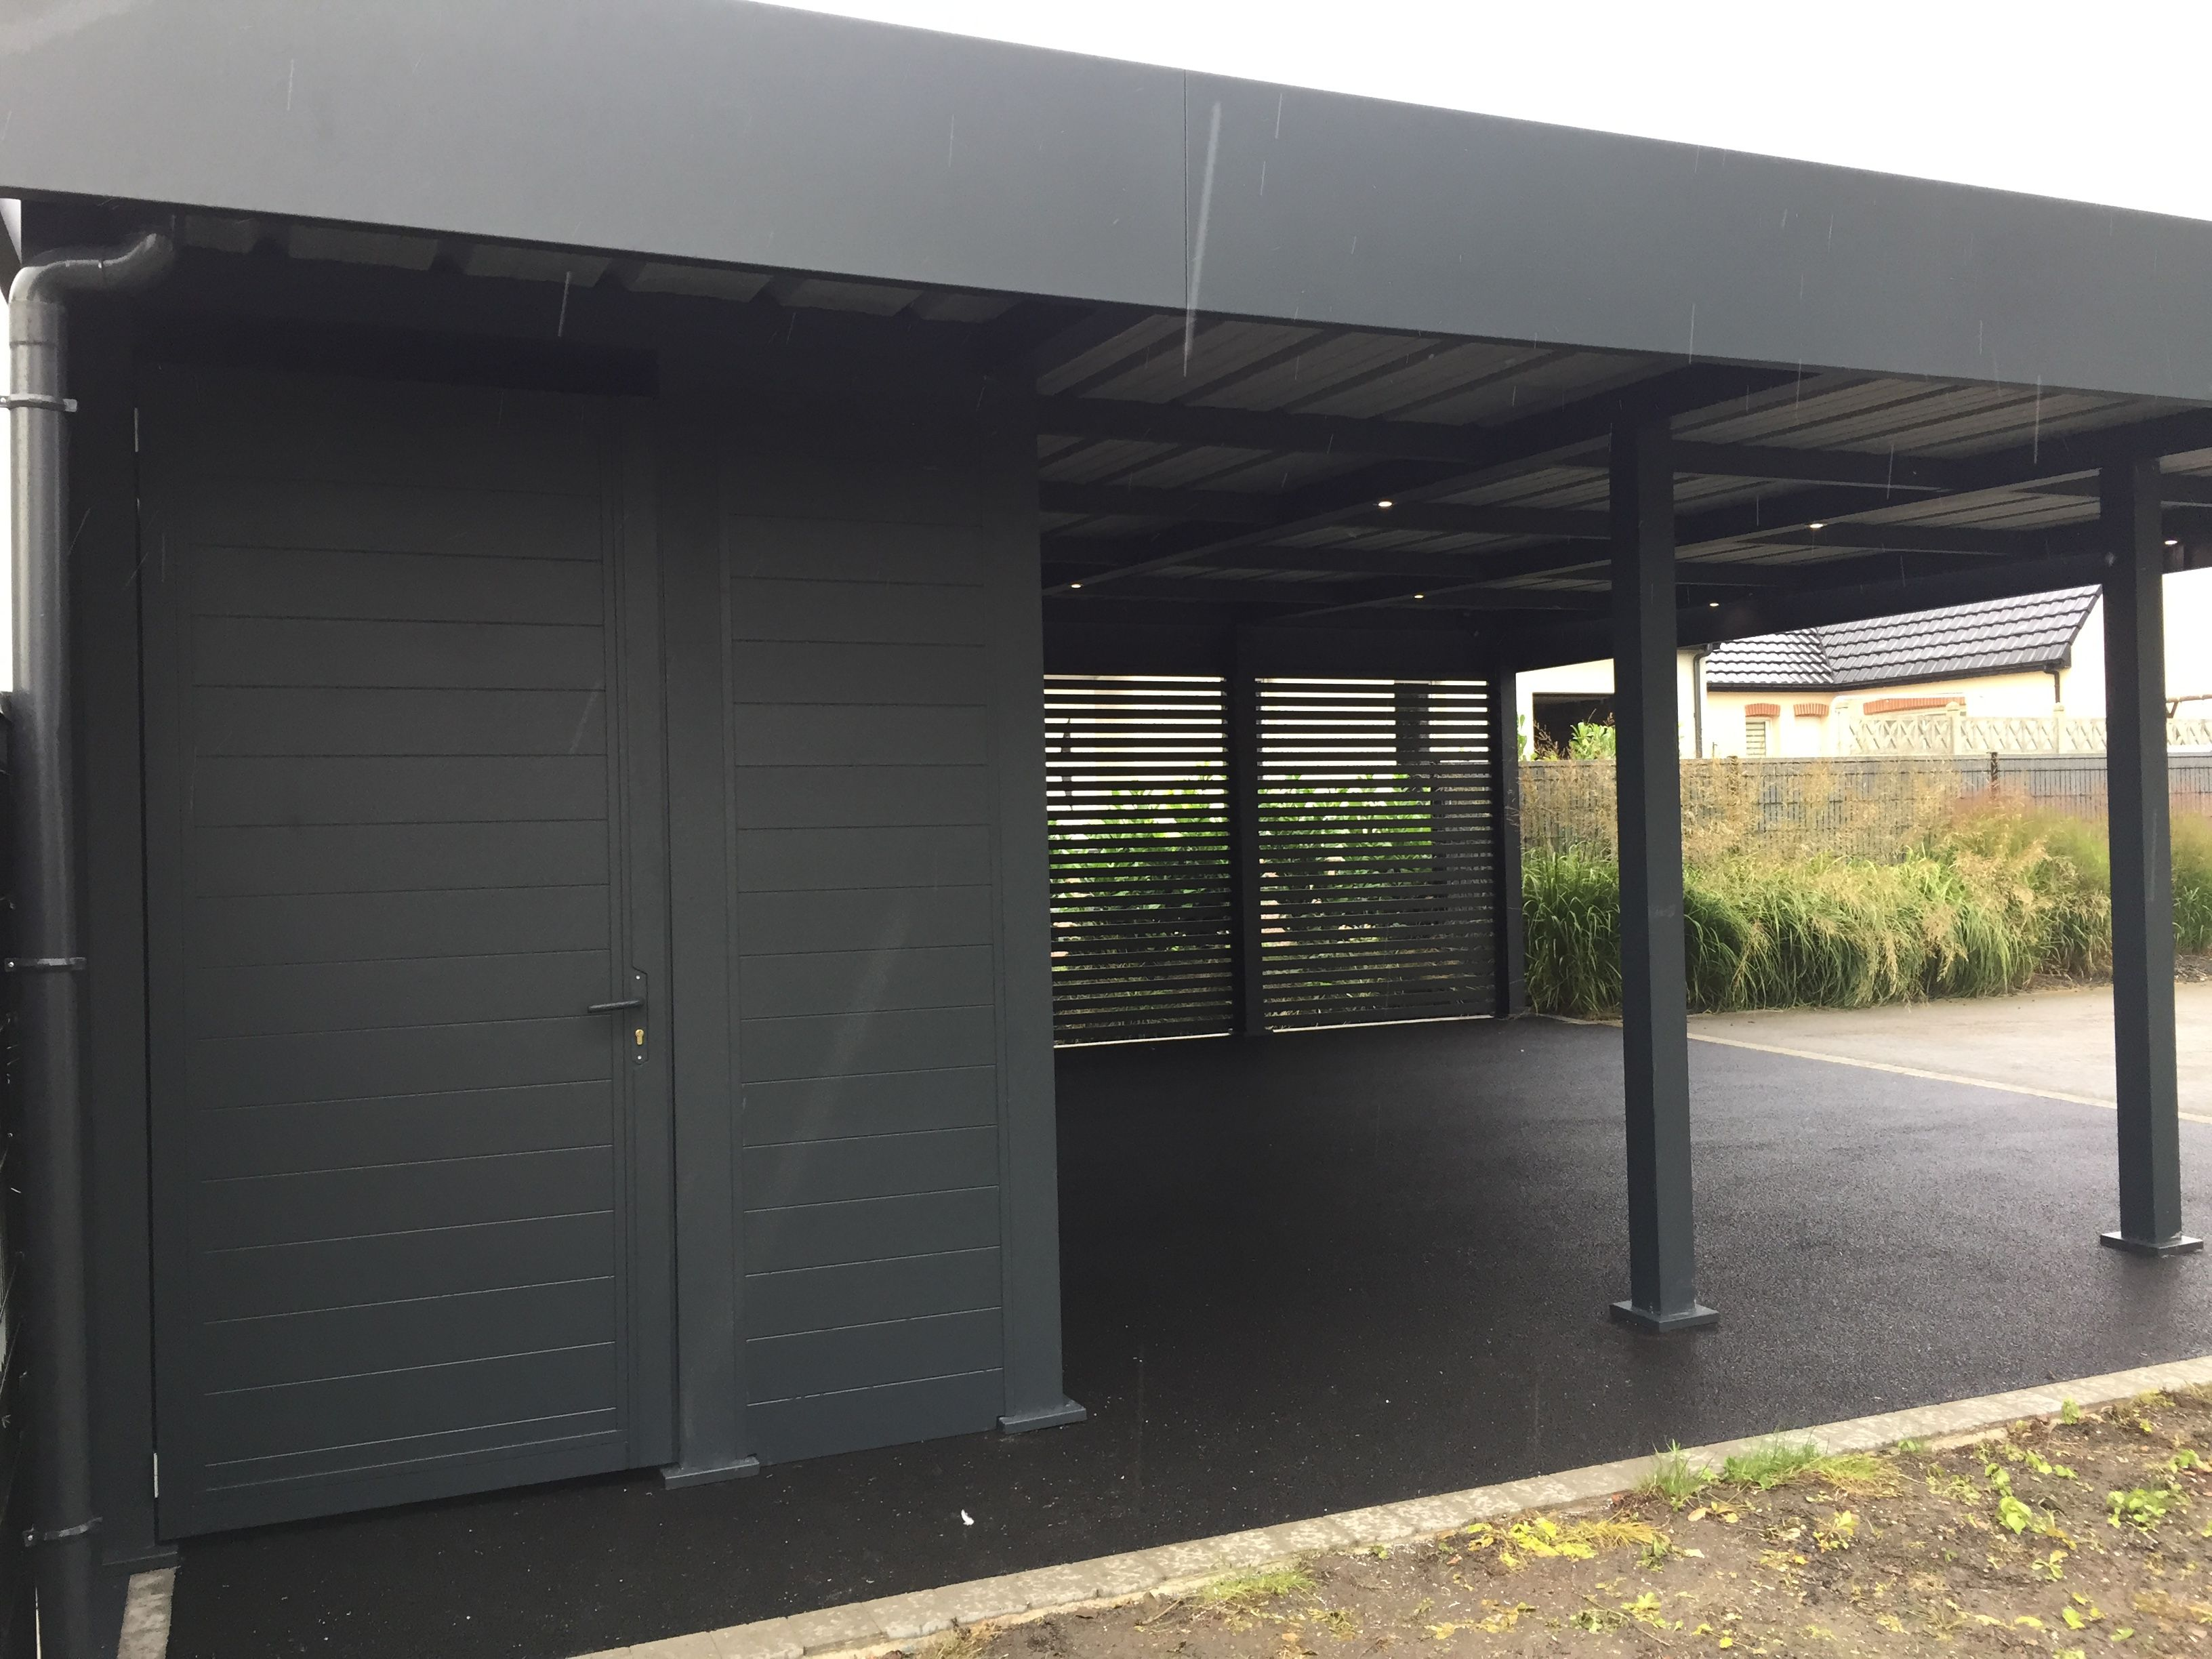 Super aluminium Archives - Carport | Carport | Pinterest | Idée et Maisons SG95